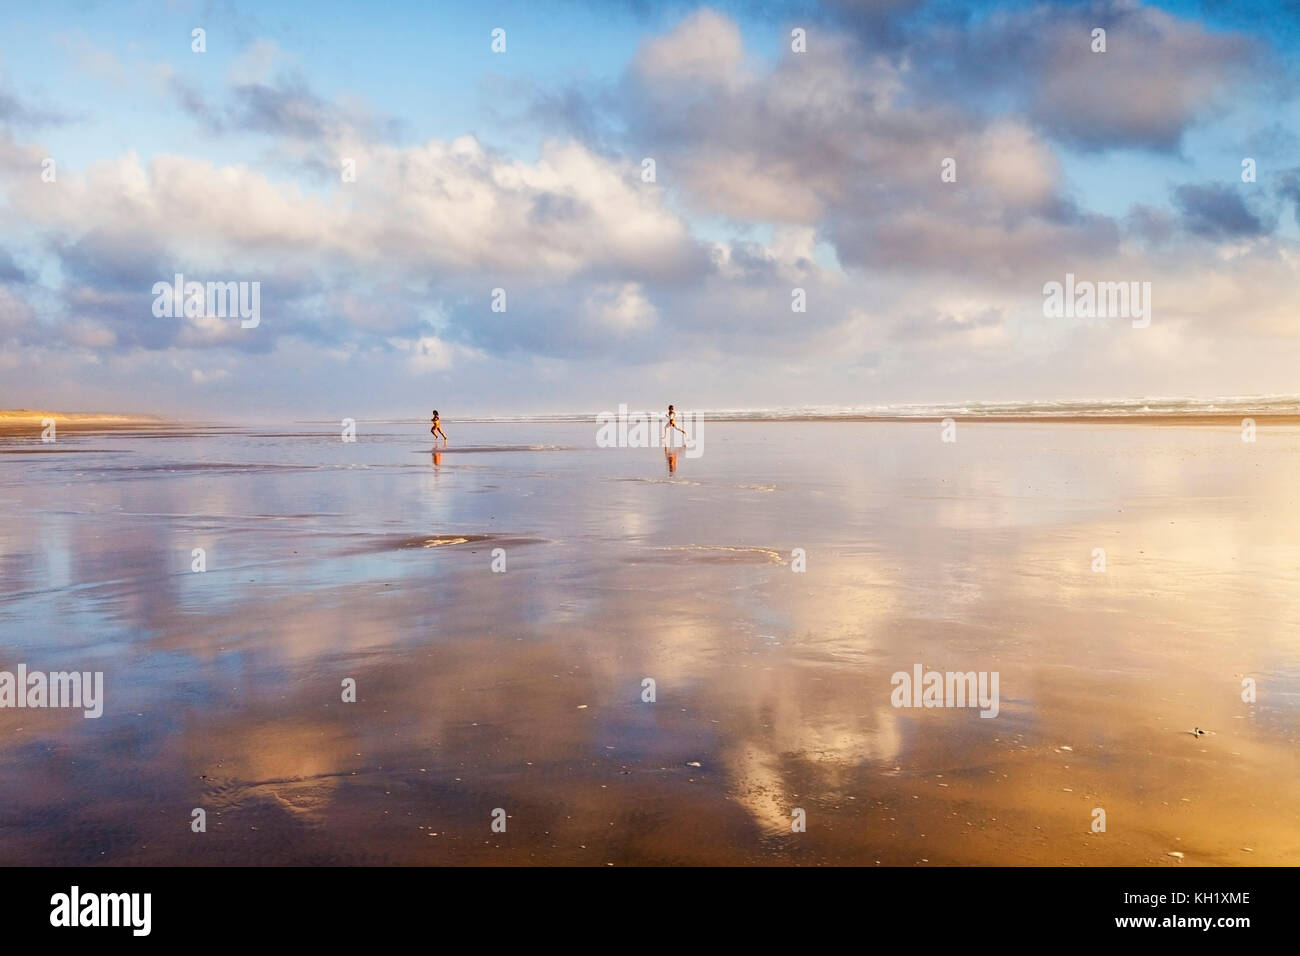 Sunset over Ninety Mile Beach, Nuova Zelanda, Northland. Immagini Stock